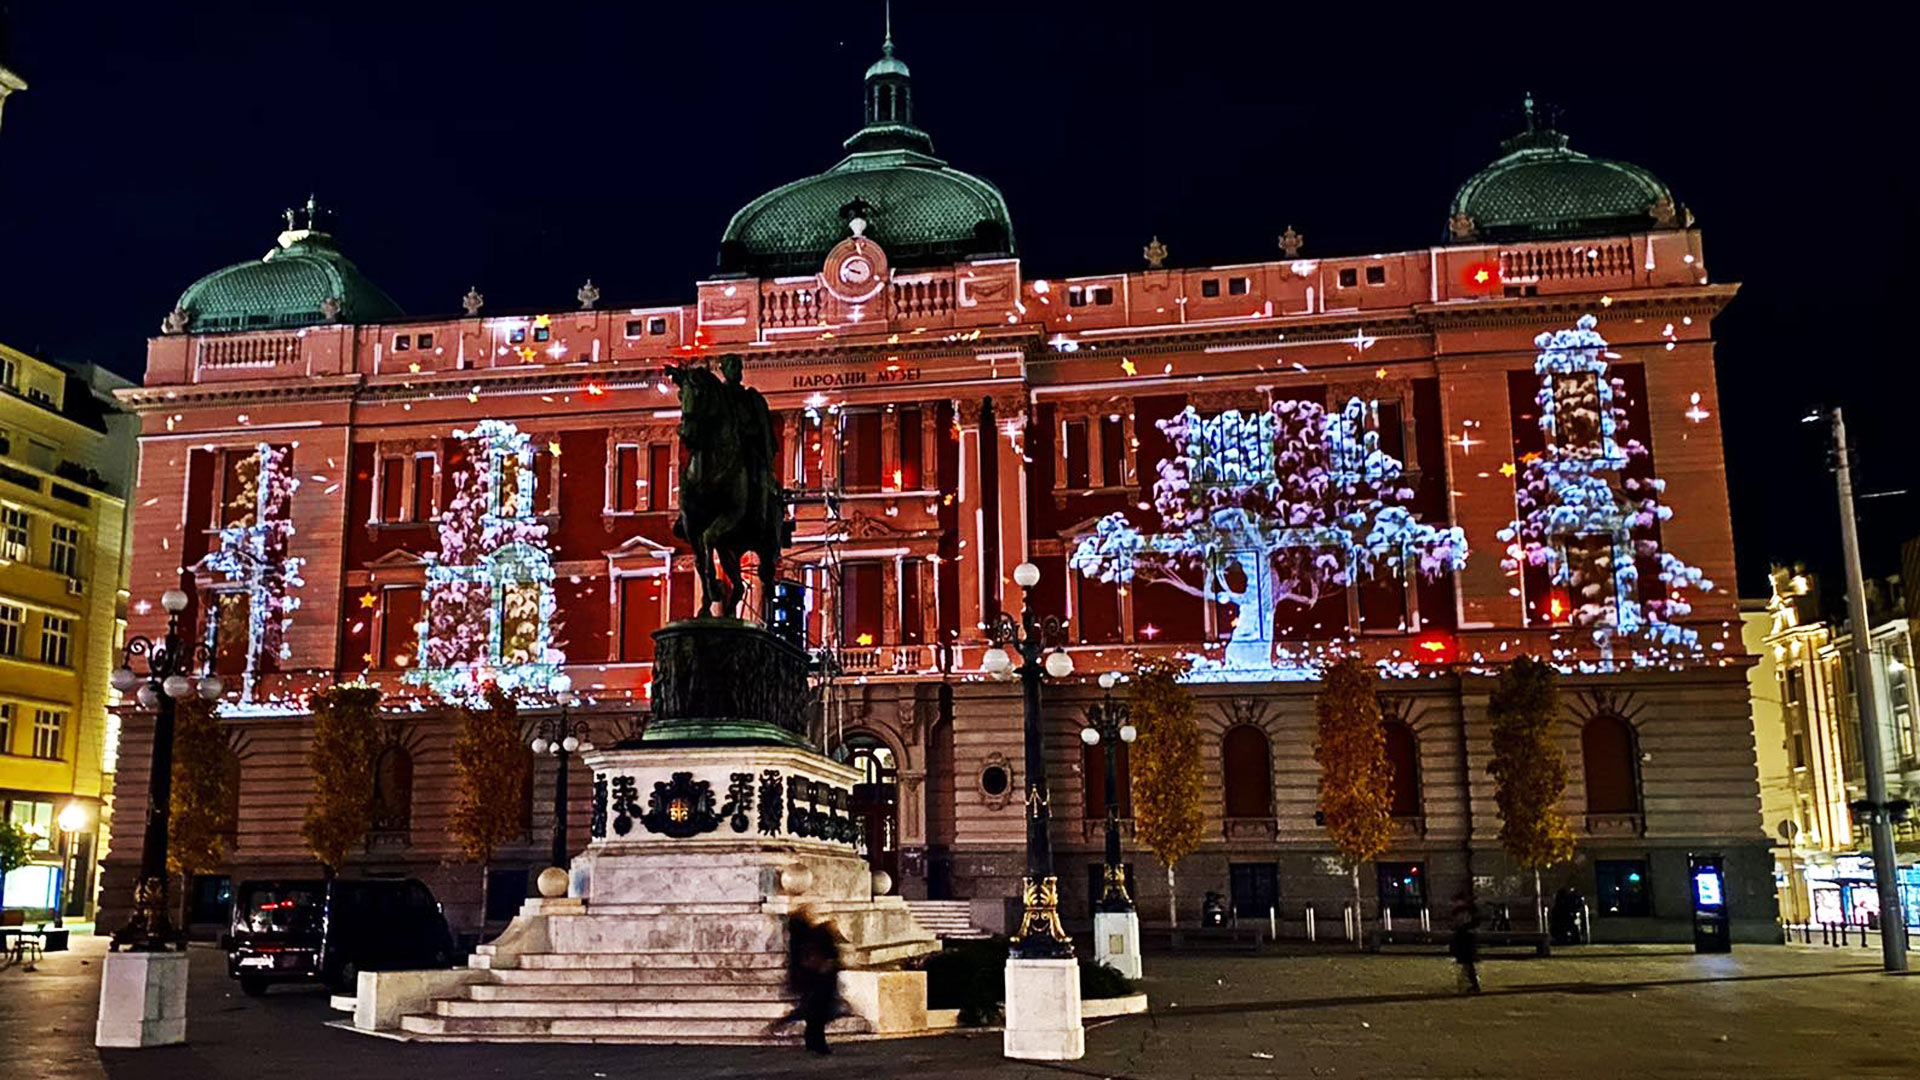 3D mapping on the National Museum facade